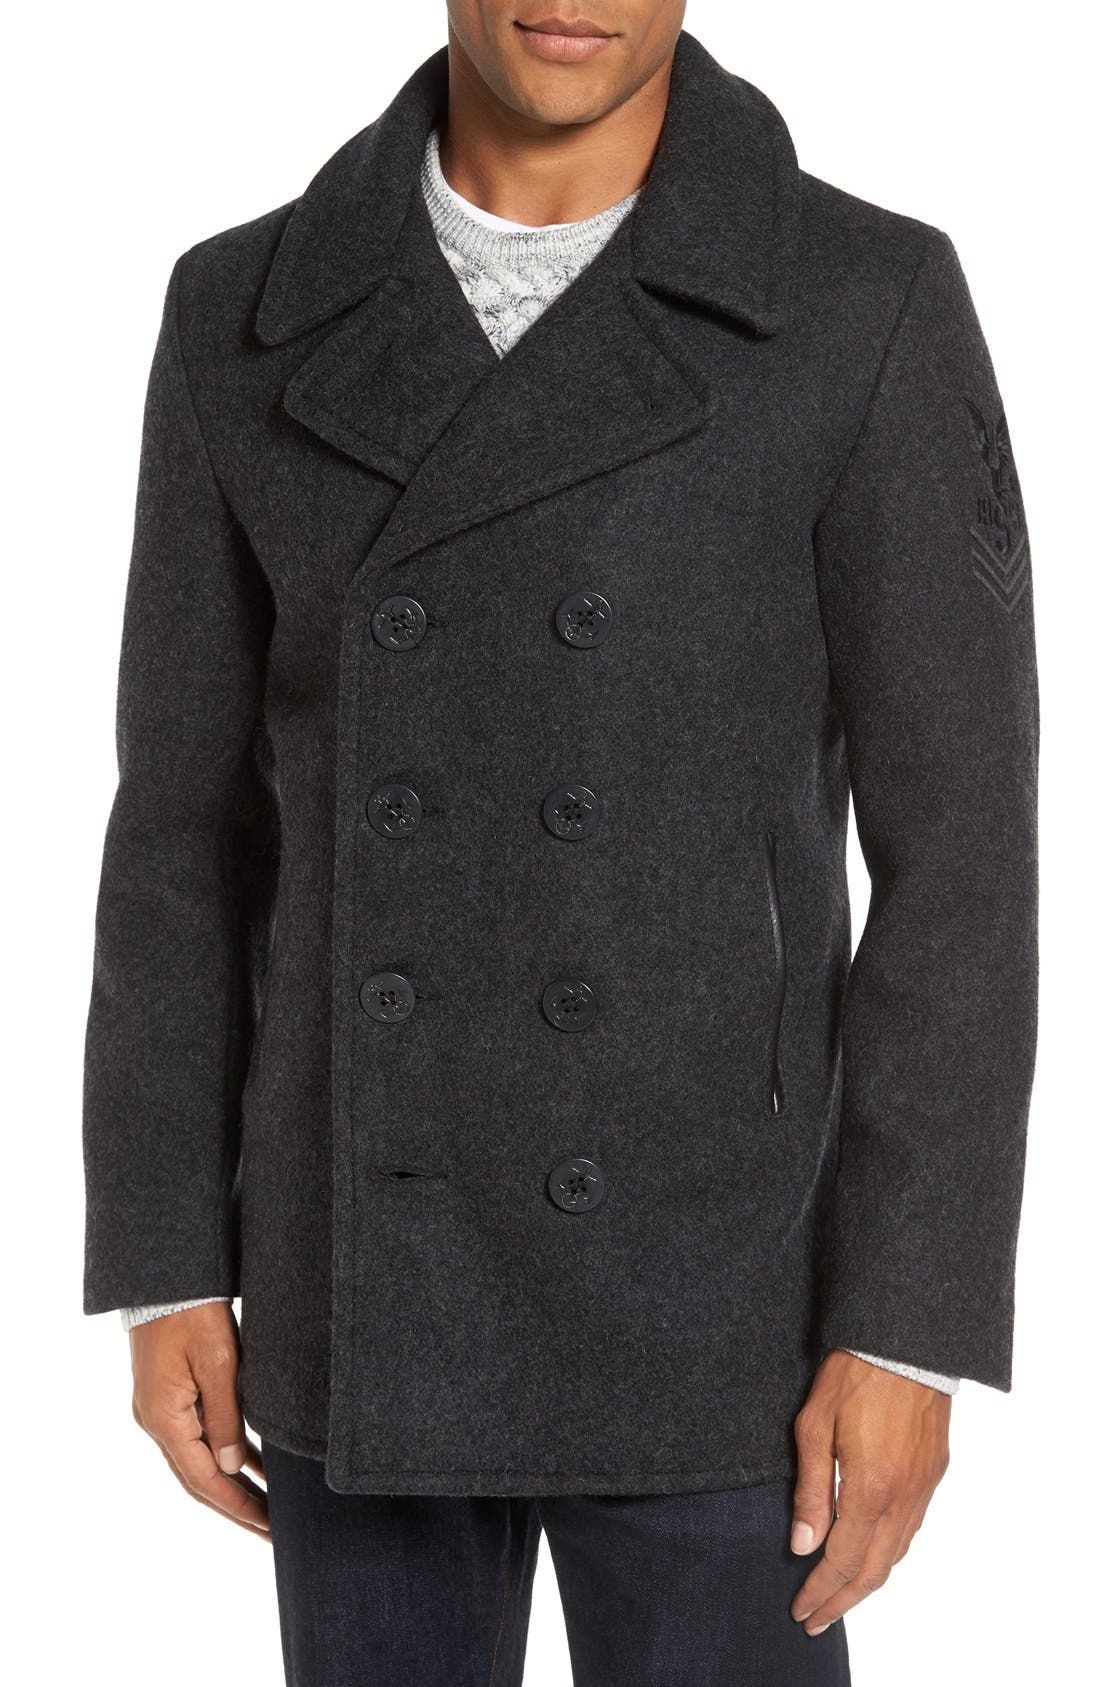 Alternate Image 1 Selected - Schott NYC Embroidered Wool Blend Peacoat